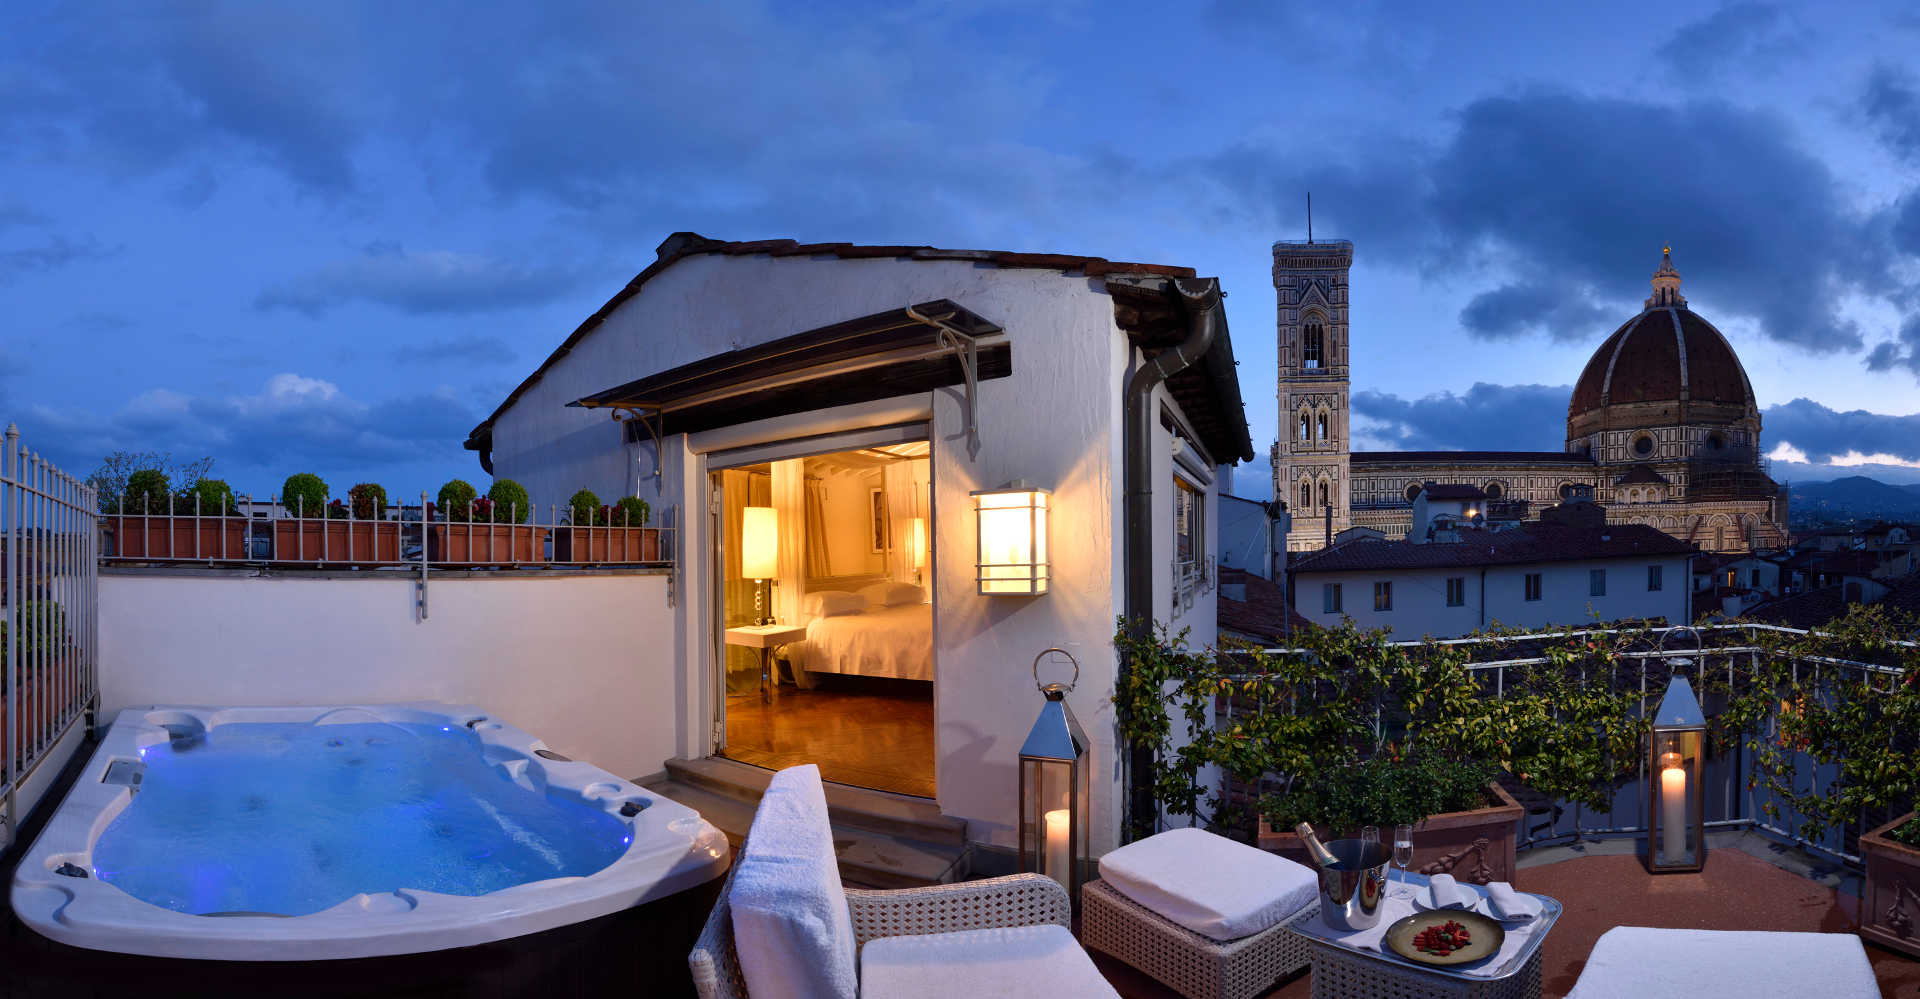 Suite Con Jacuzzi In Camera A Firenze Hotel Brunelleschi